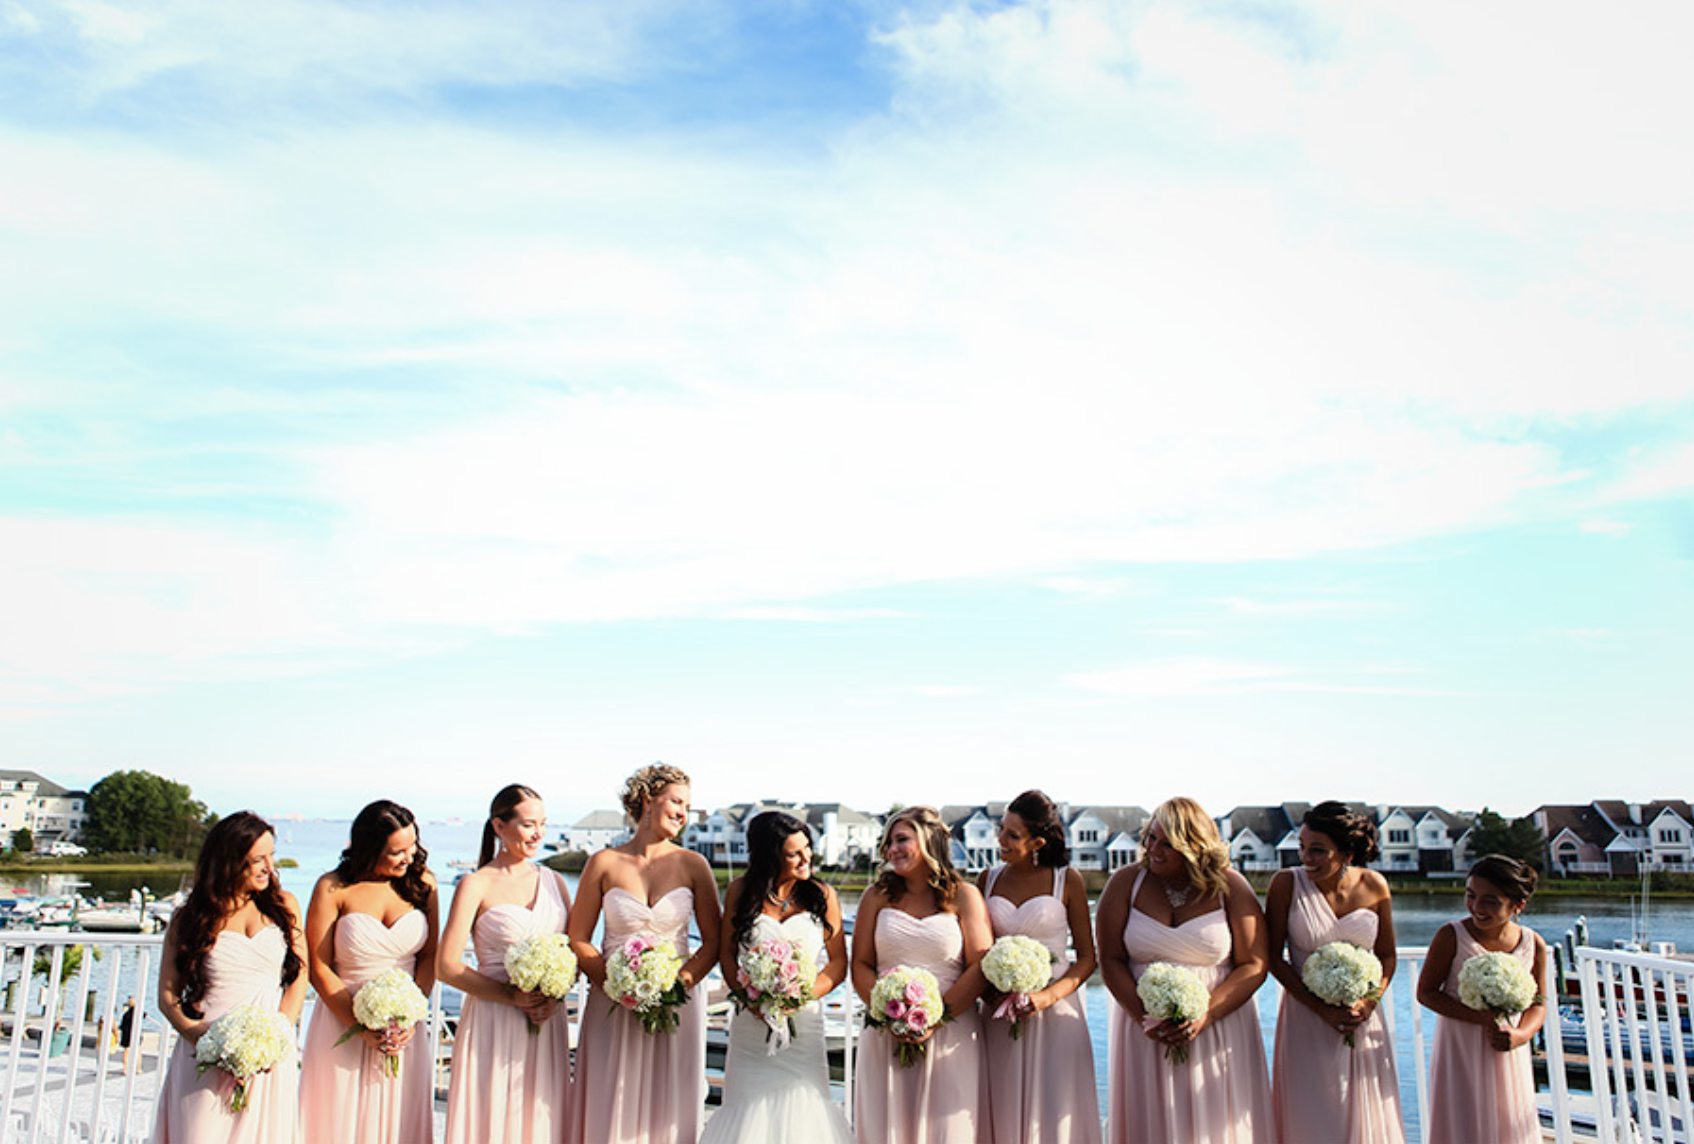 little miss lovely // ocean city wedding florist pink rose and hydrangea bouquet // photo by sarah murray photography